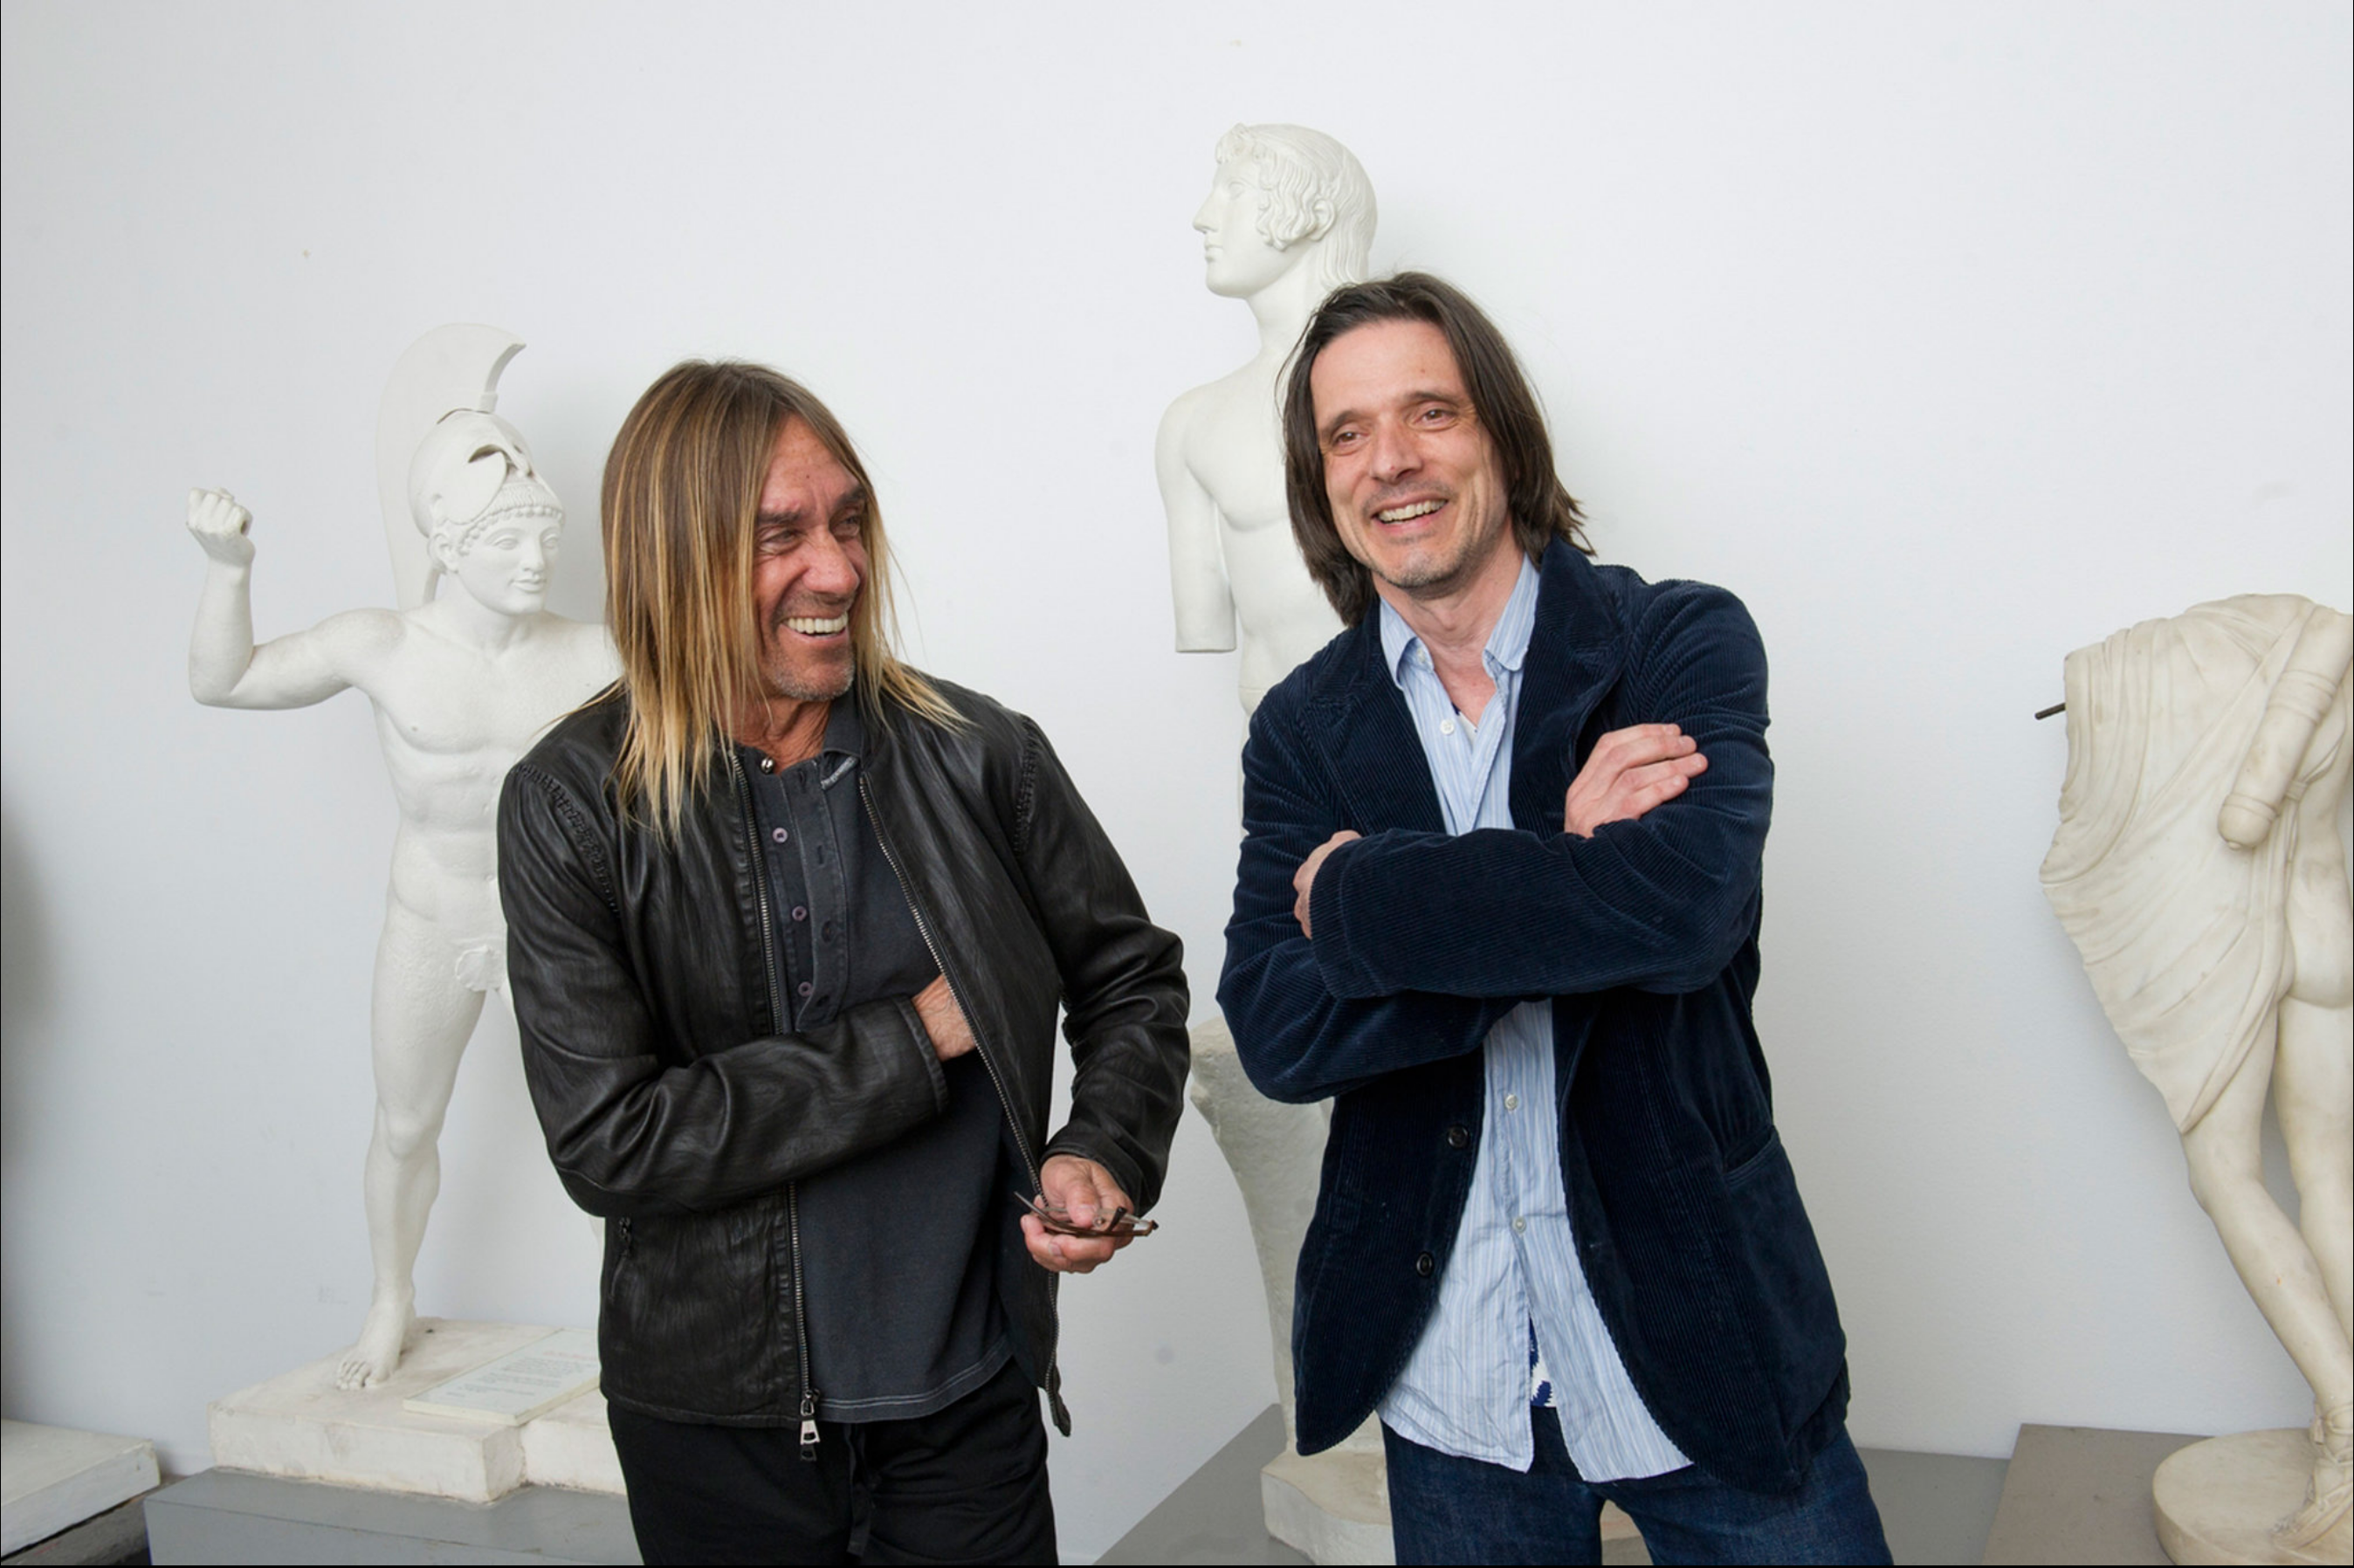 Iggy Pop: Musician, Icon — and Now, Live Nude Model